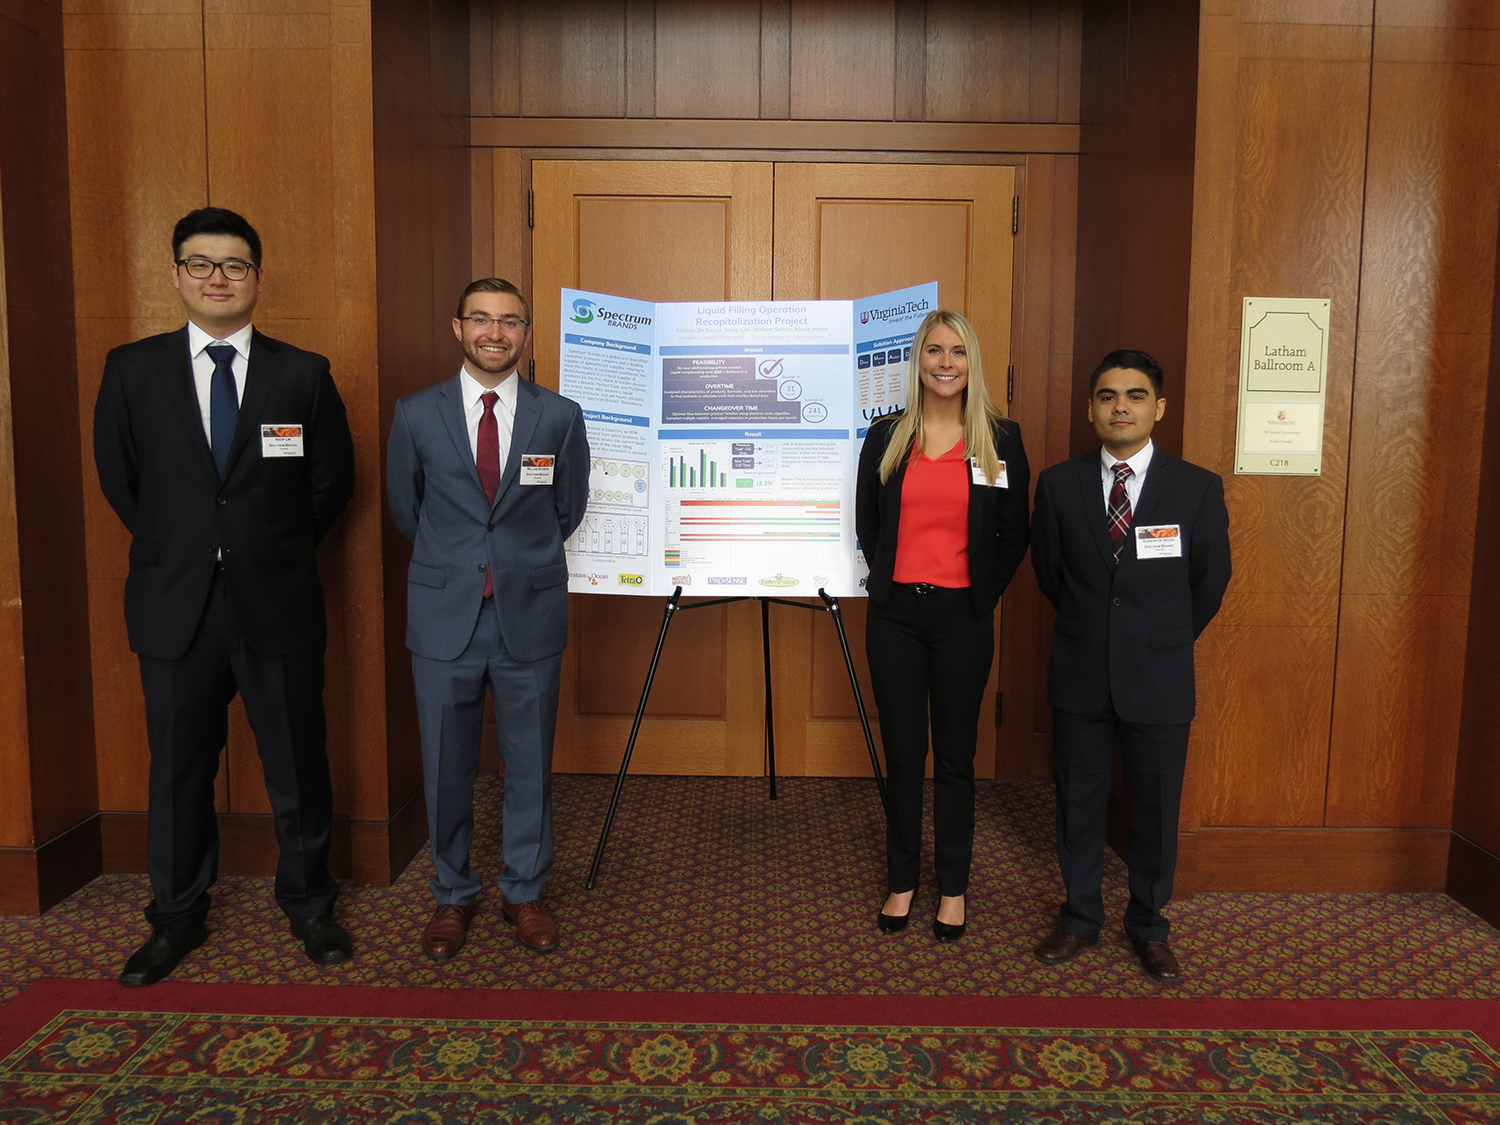 Robson De Souza, Insup Lim, William Scherr, Alexis White